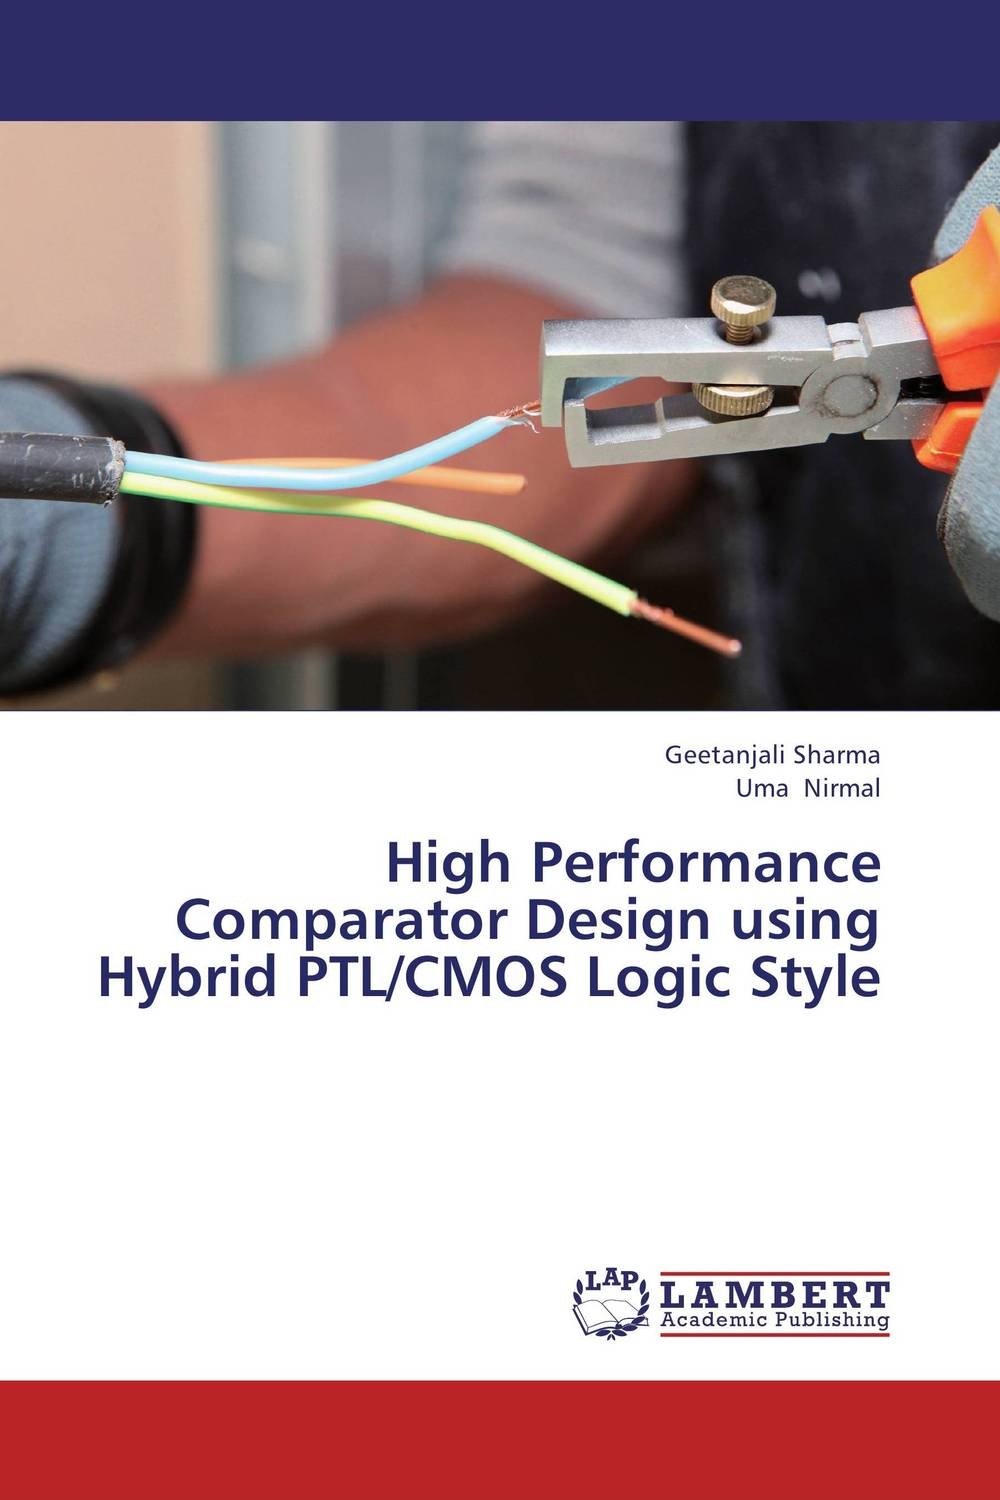 High Performance Comparator Design using Hybrid PTL/CMOS Logic Style